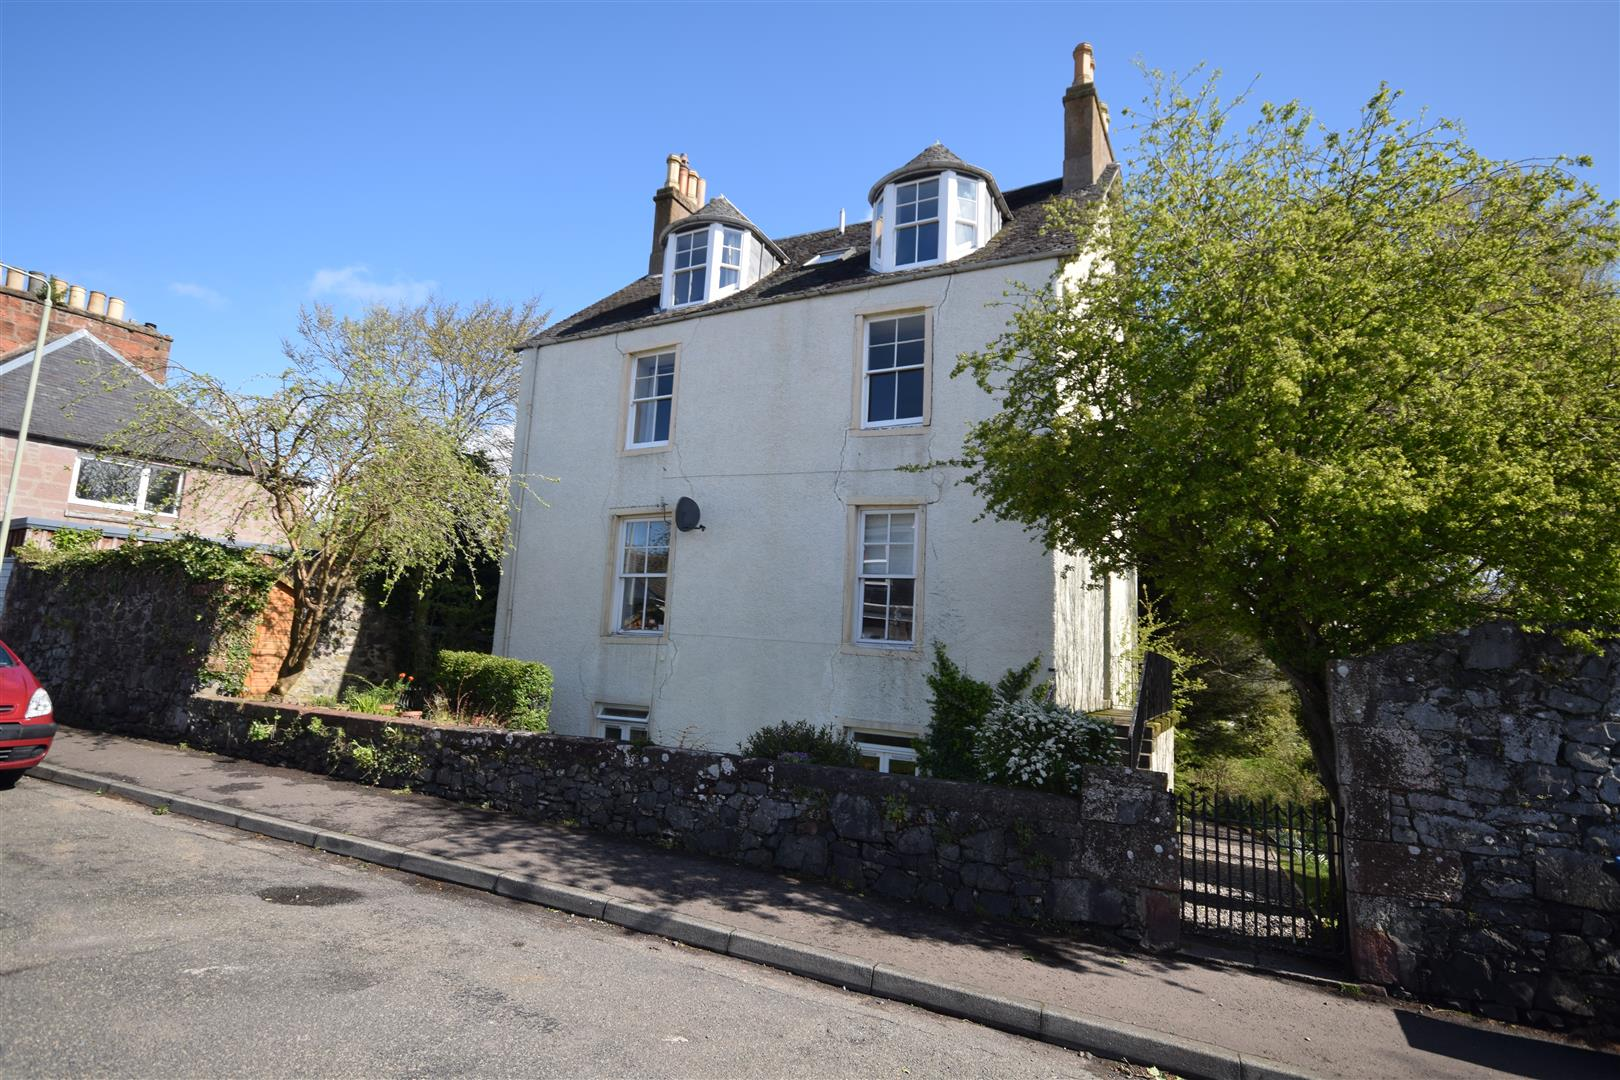 Ground Floor Flat, Gilloch Hall, Back Street, Bridge of Earn, Perthshire, PH2 9AB, UK